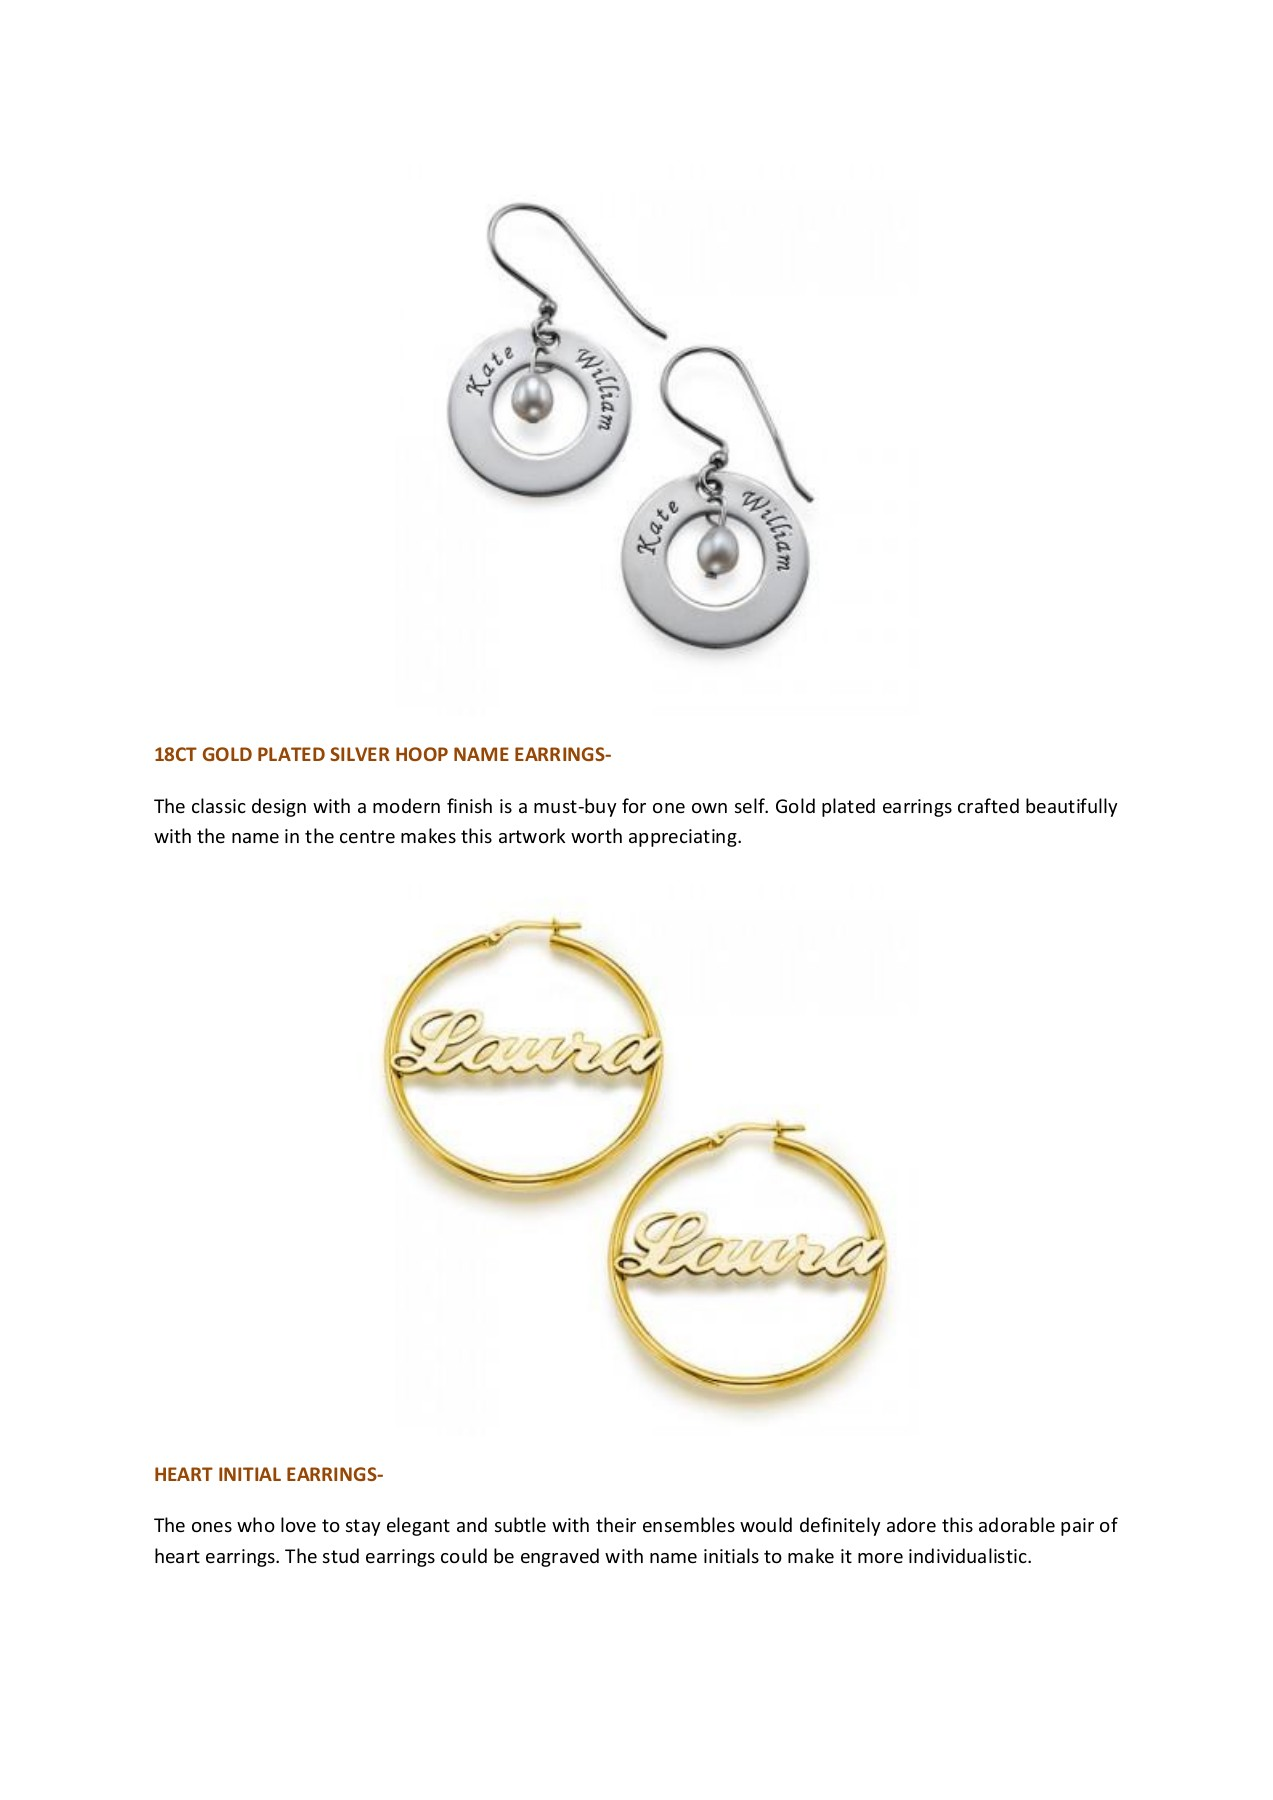 For Personalised Earrings Online At Low Prices In Uk